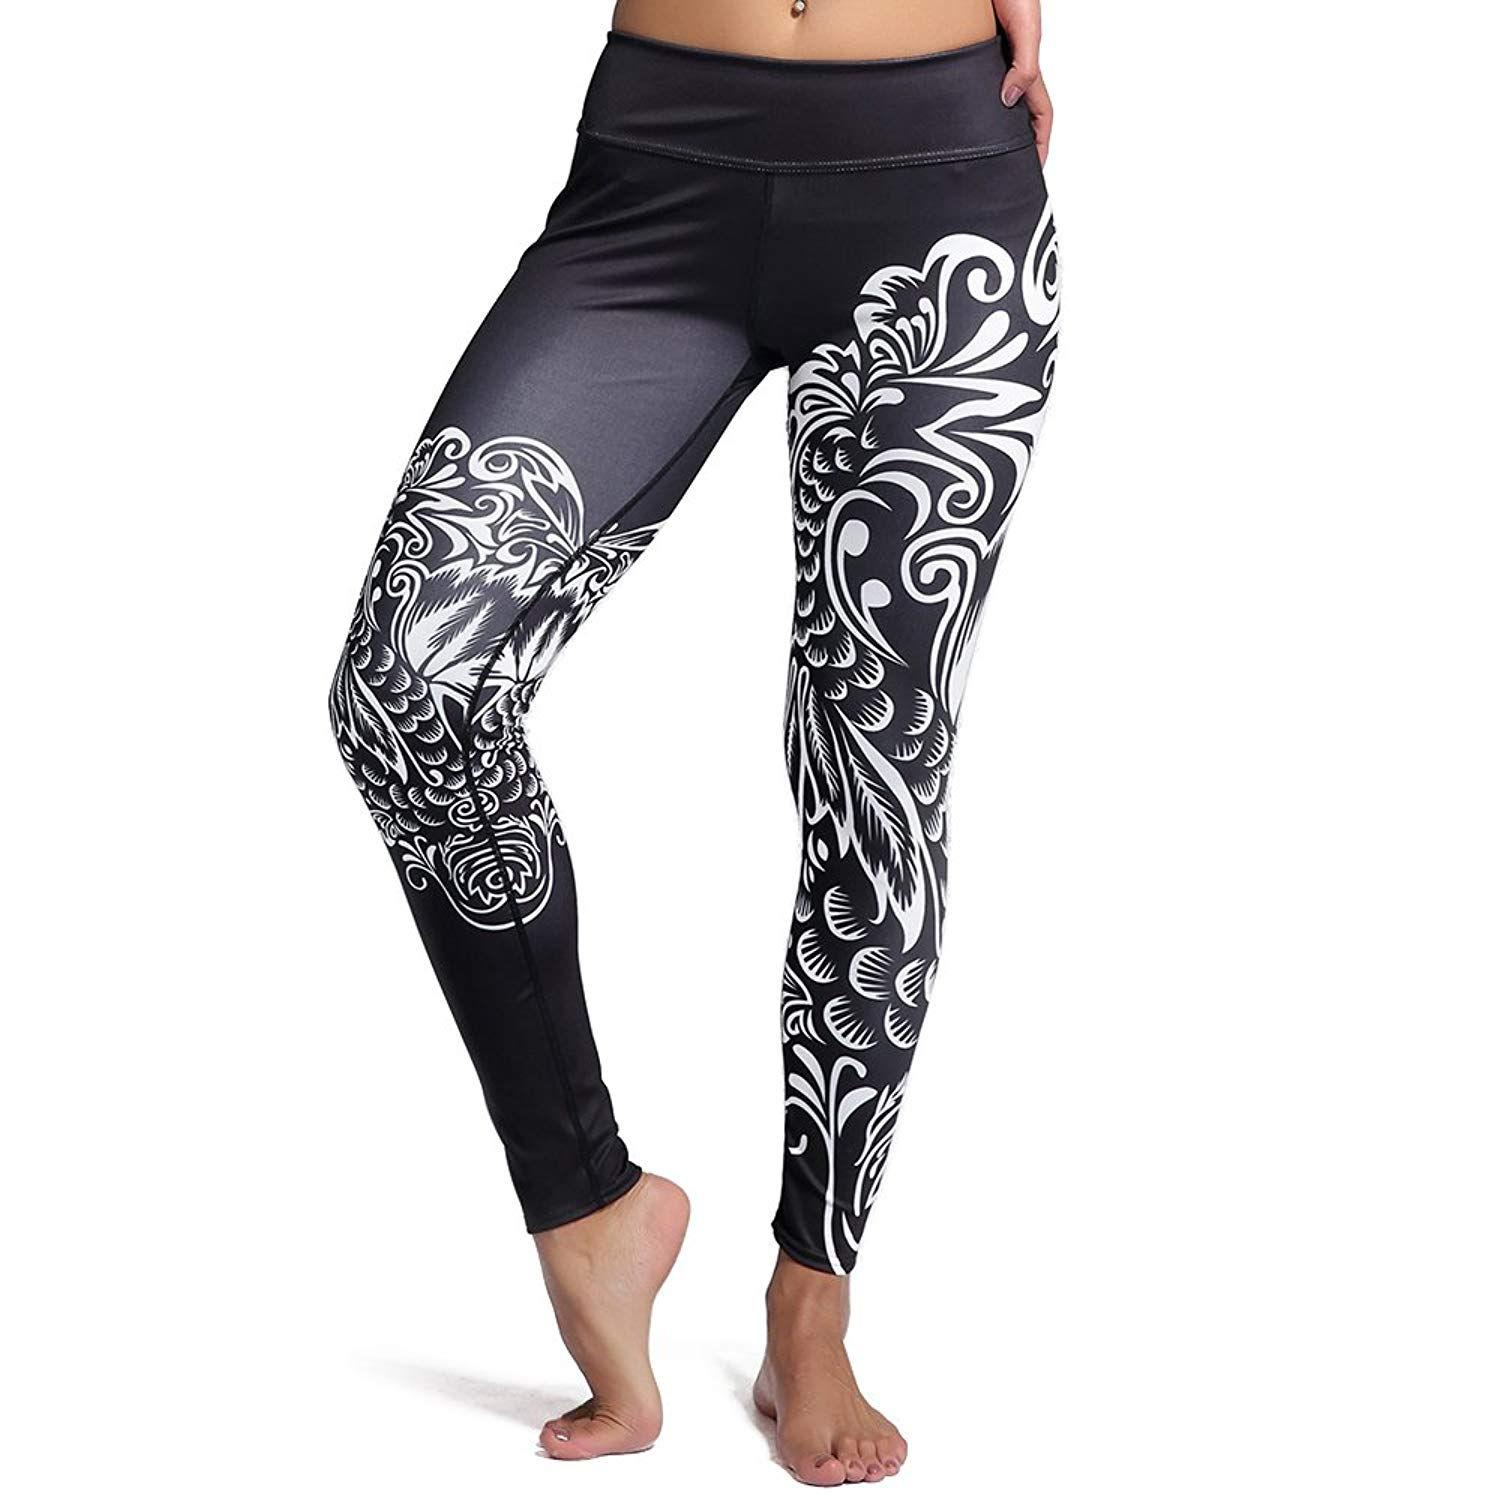 fbb07c2faf2 Get Quotations · mwbay Womens Marble Pattern Colorful Yoga Pants Thick  Knitted Leggings for Gym Fitness Running